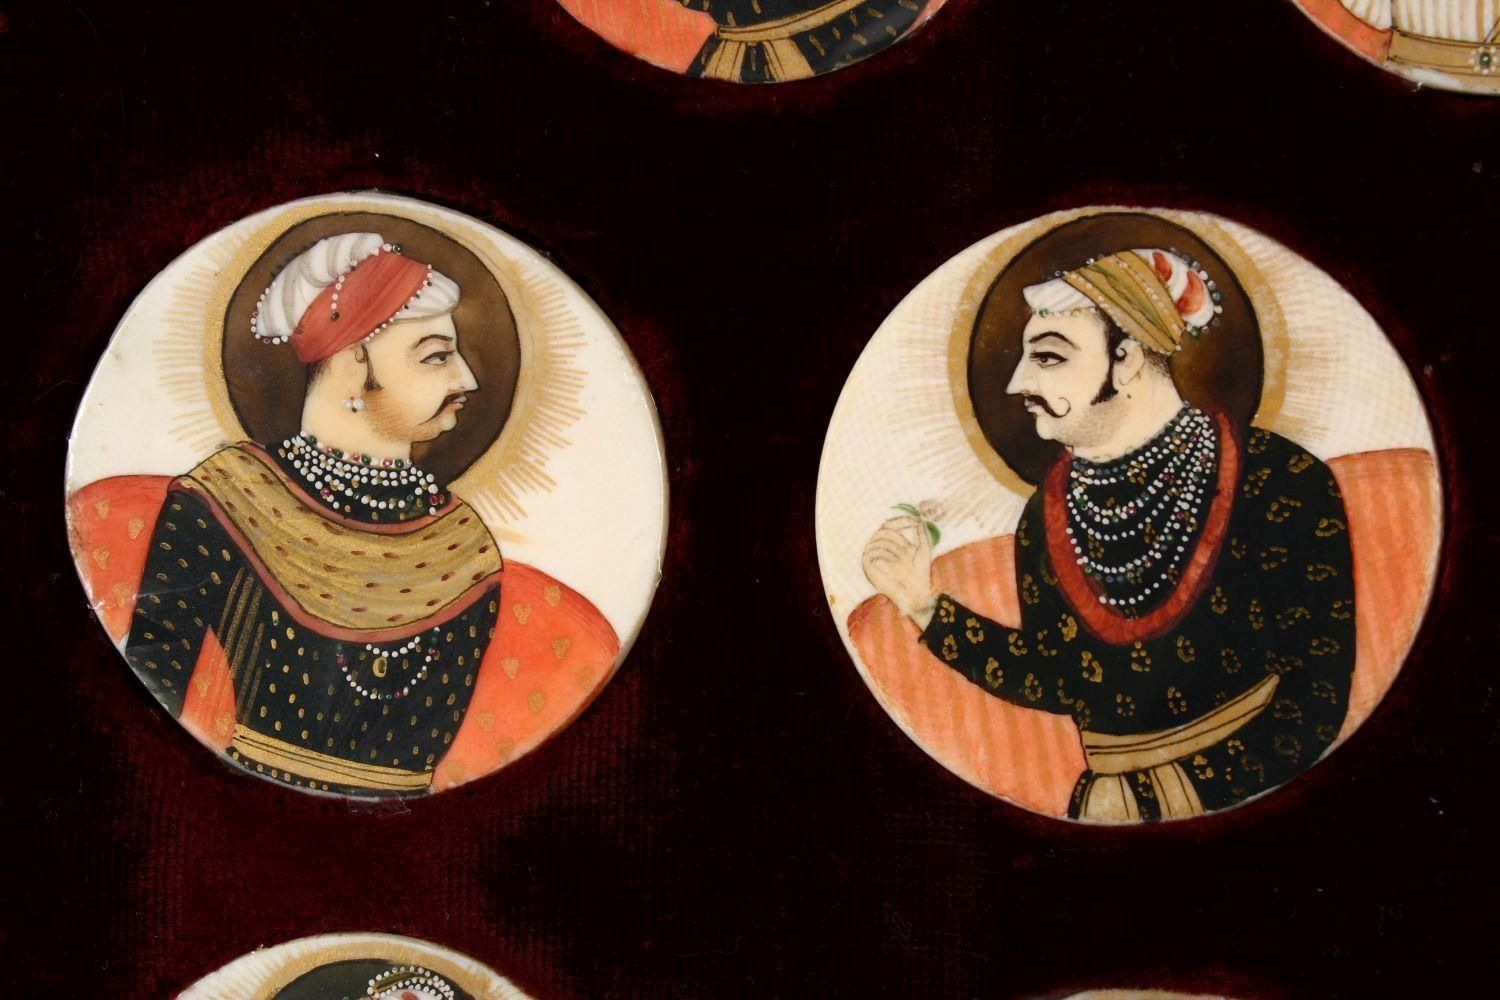 A BOXED SET OF THIRTEEN 18TH/19TH CENTURY PERSIAN CARVED & PAINTED IVORY MINIATURES, each of the - Image 5 of 10